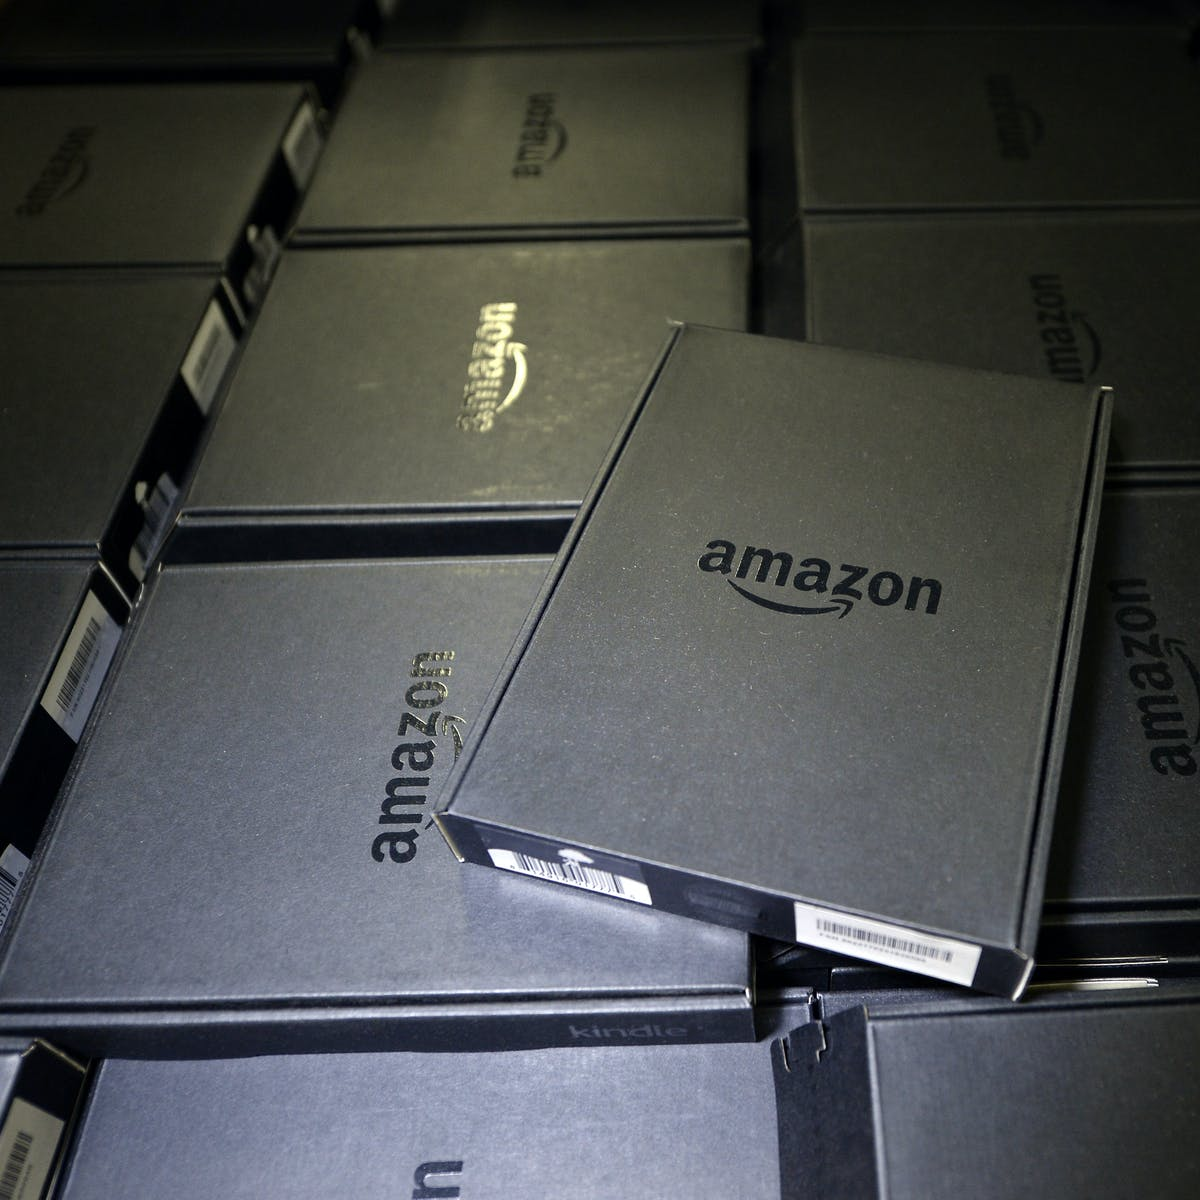 Amazon Brings Digital Day Back for End-of-December Deal-Snatching